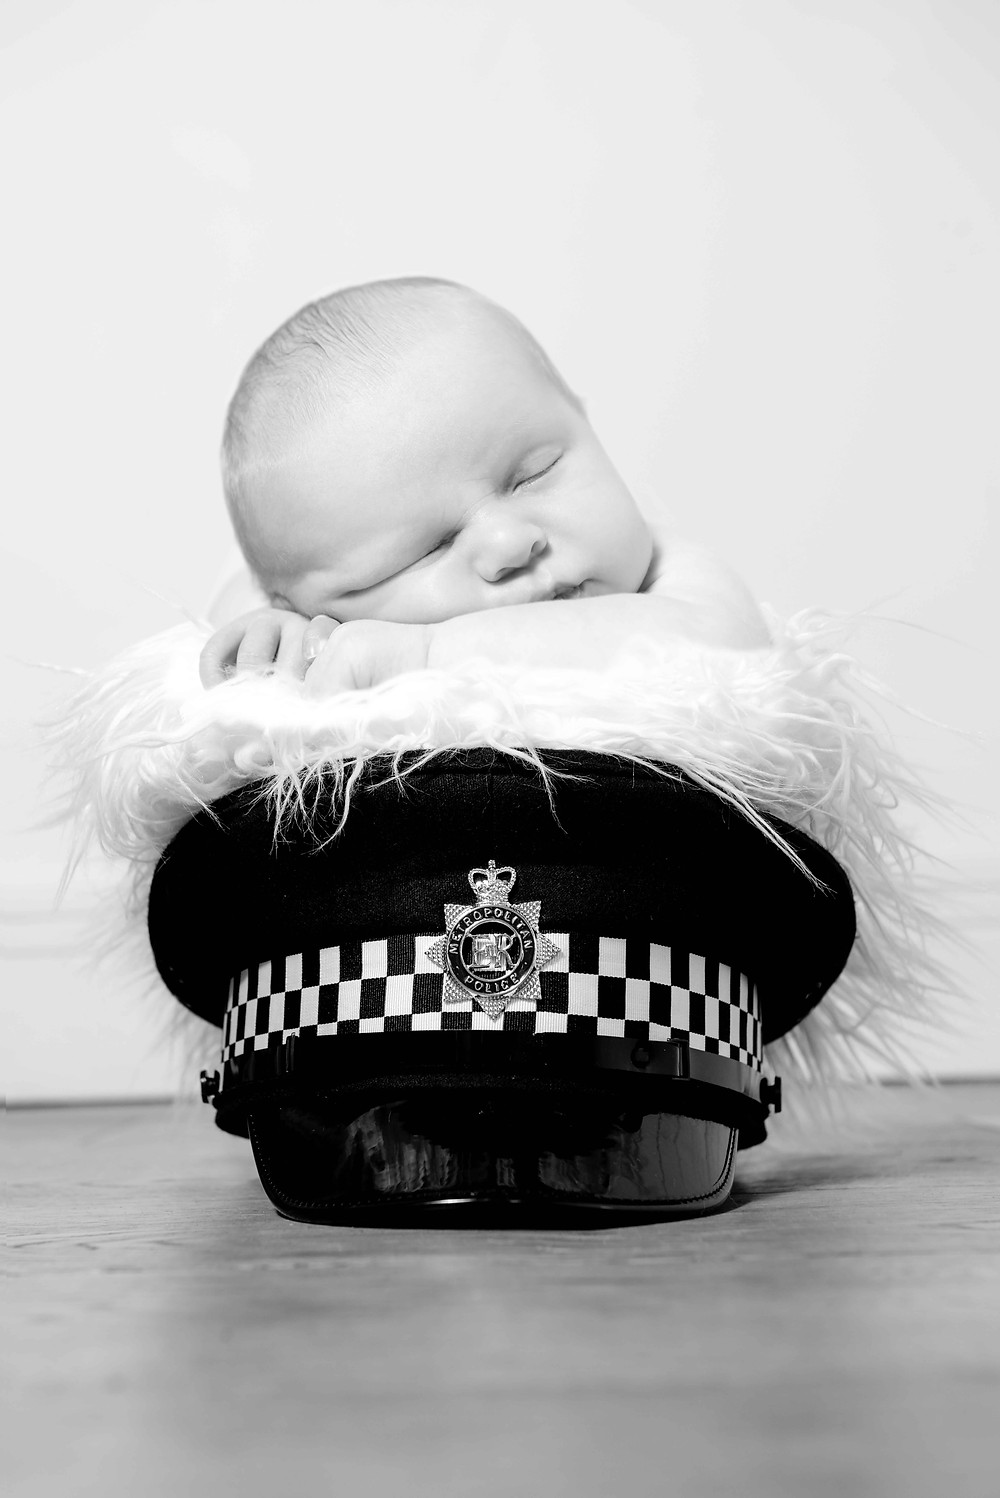 Baby in Policeman's hat